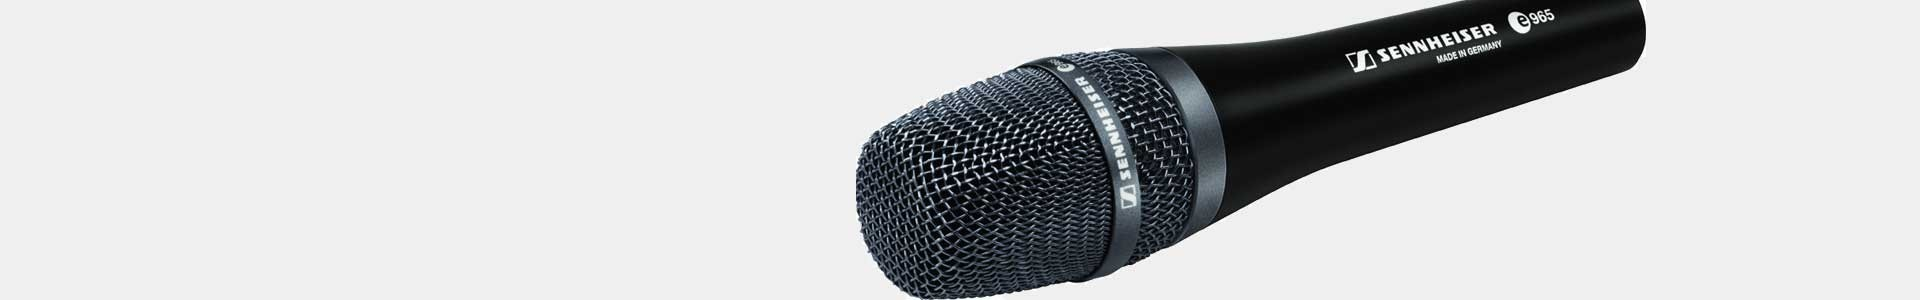 Professional handheld microphones at the best price - Avacab